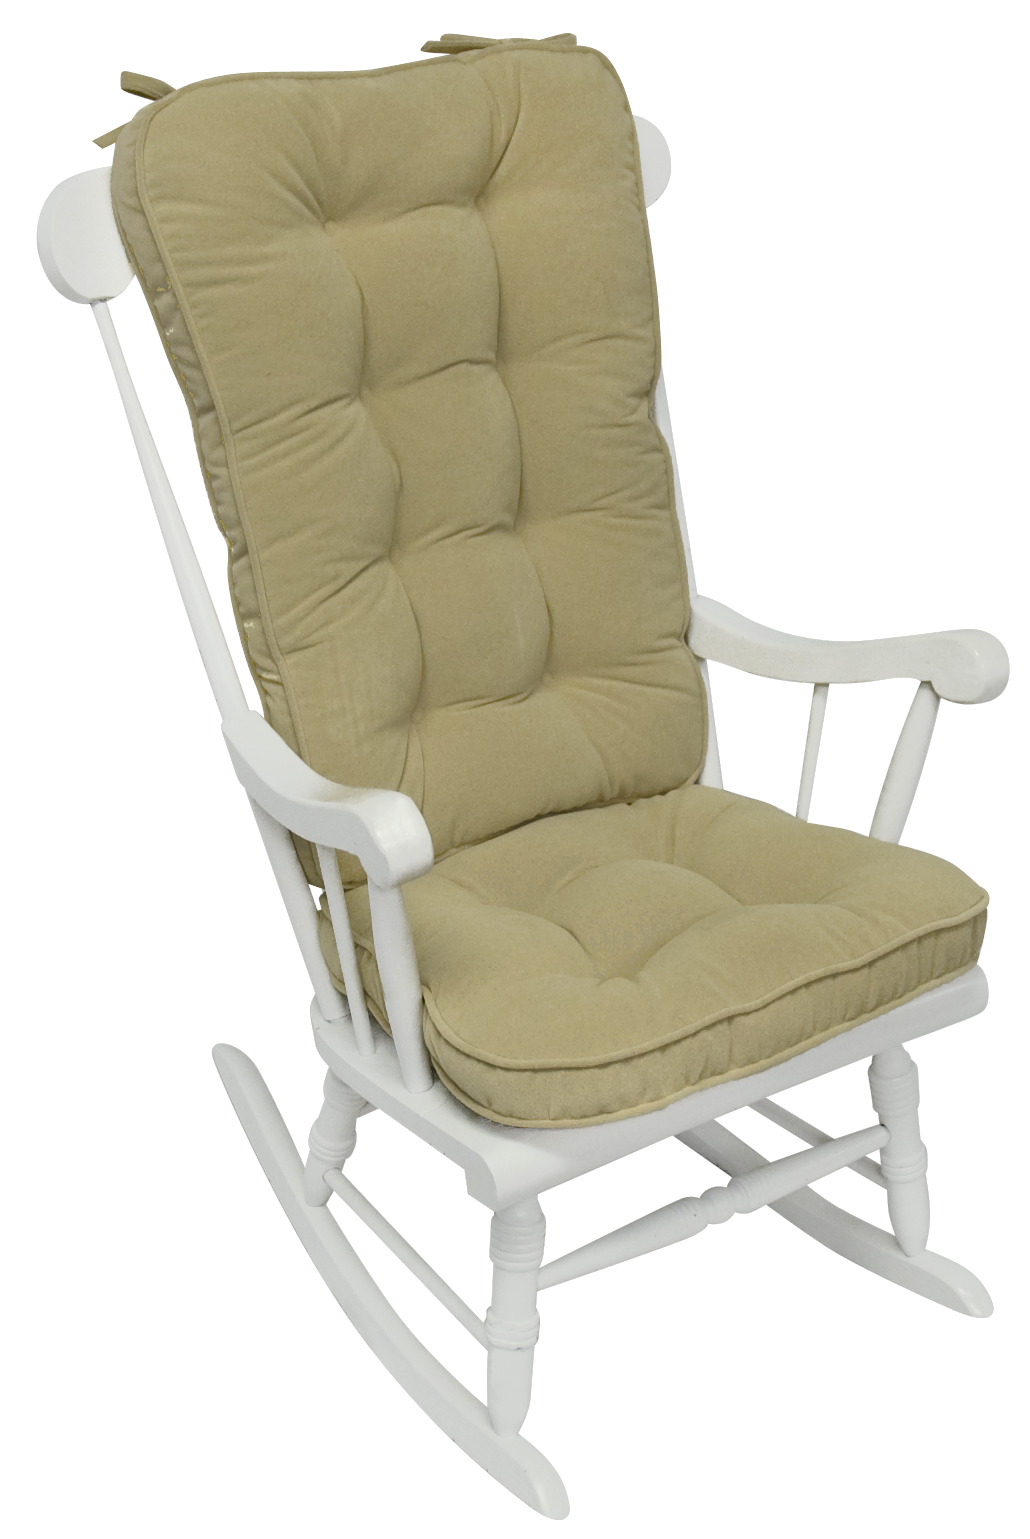 Rocking Chair With Cushions Rocking Chair Back Cushion Chair Pads And Cushions